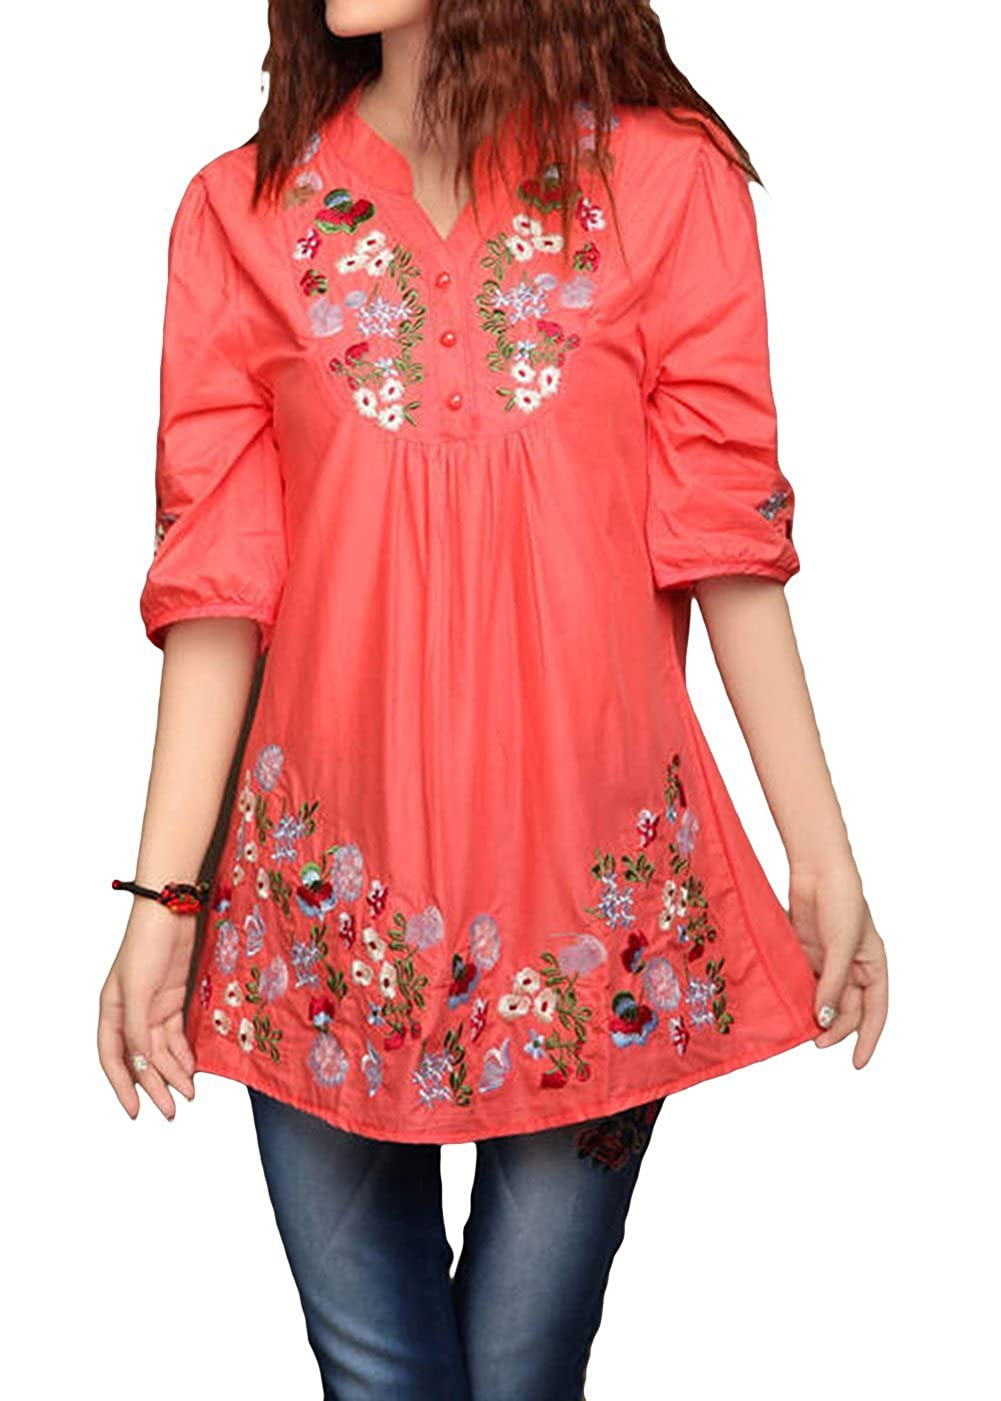 b7716373720 Top 10 wholesale Mexican Embroidered Peasant Shirts - Chinabrands.com